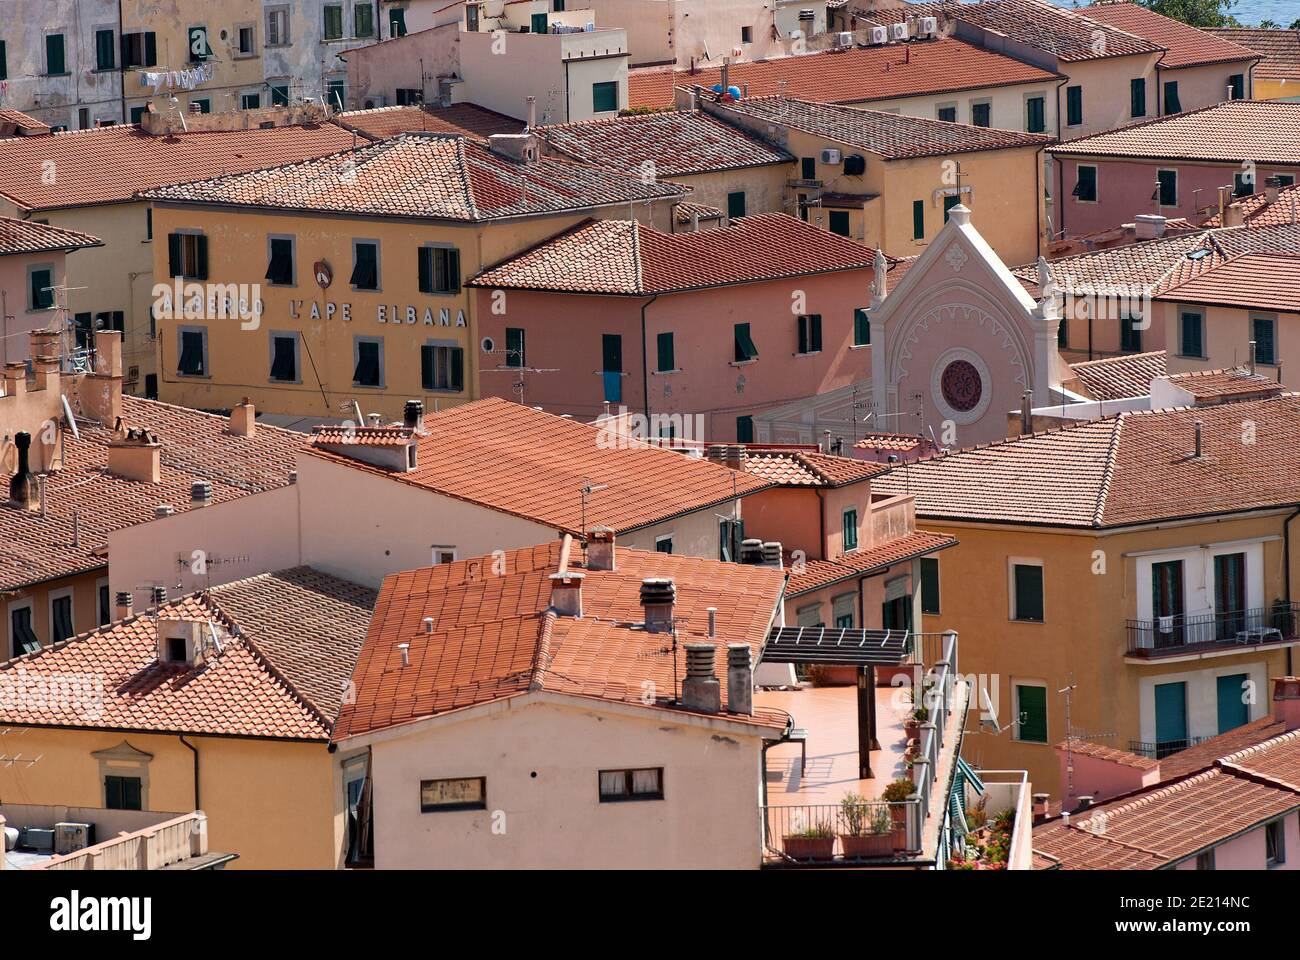 Portoferraio village with the top of the Nativity of the Blessed Virgin Mary Church standing out among the houses, Elba Island, Tuscany, Italy Stock Photo